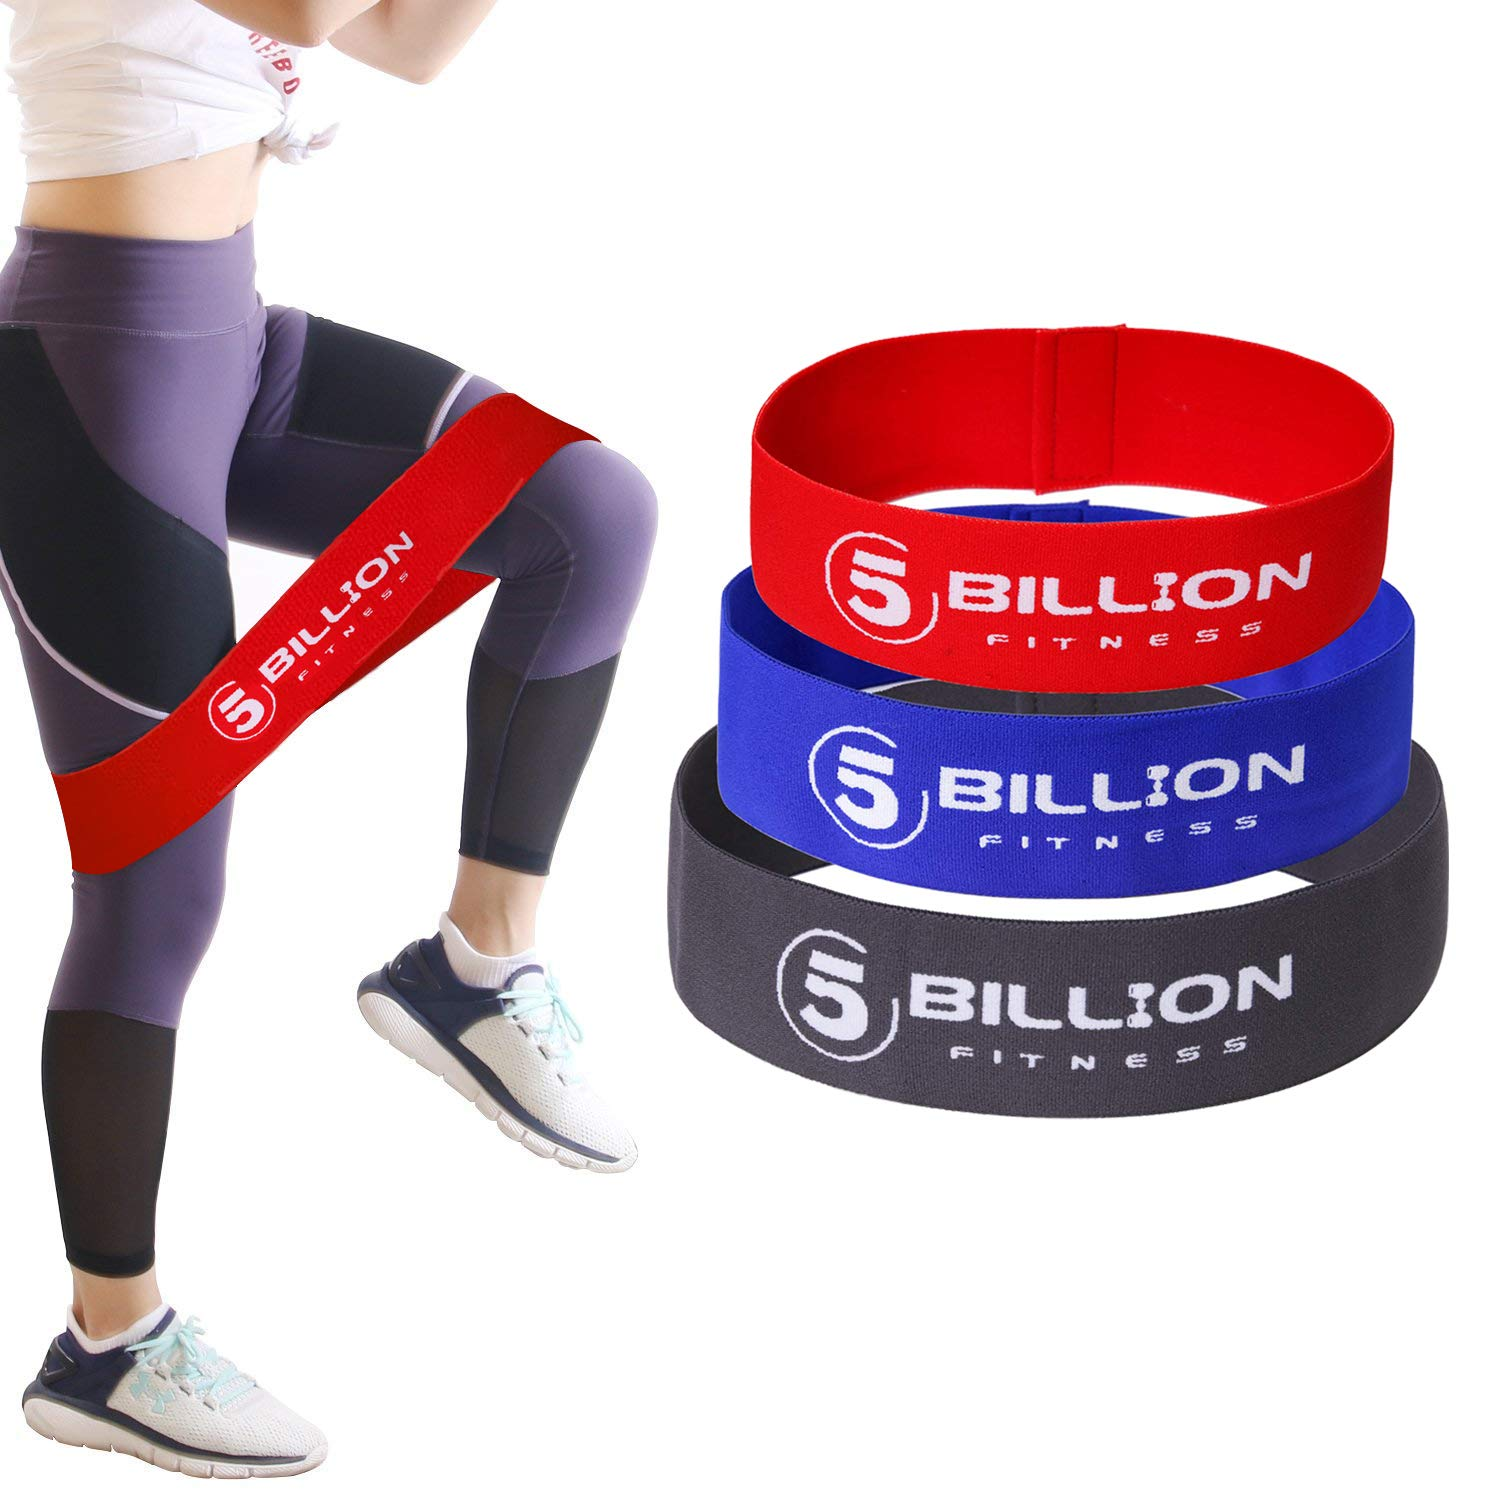 for Booty Soft /& Non-Slip Design Loop Set 5BILLION Fabric Resistance Bands Hip Exercise Bands Thigh /& Glutes